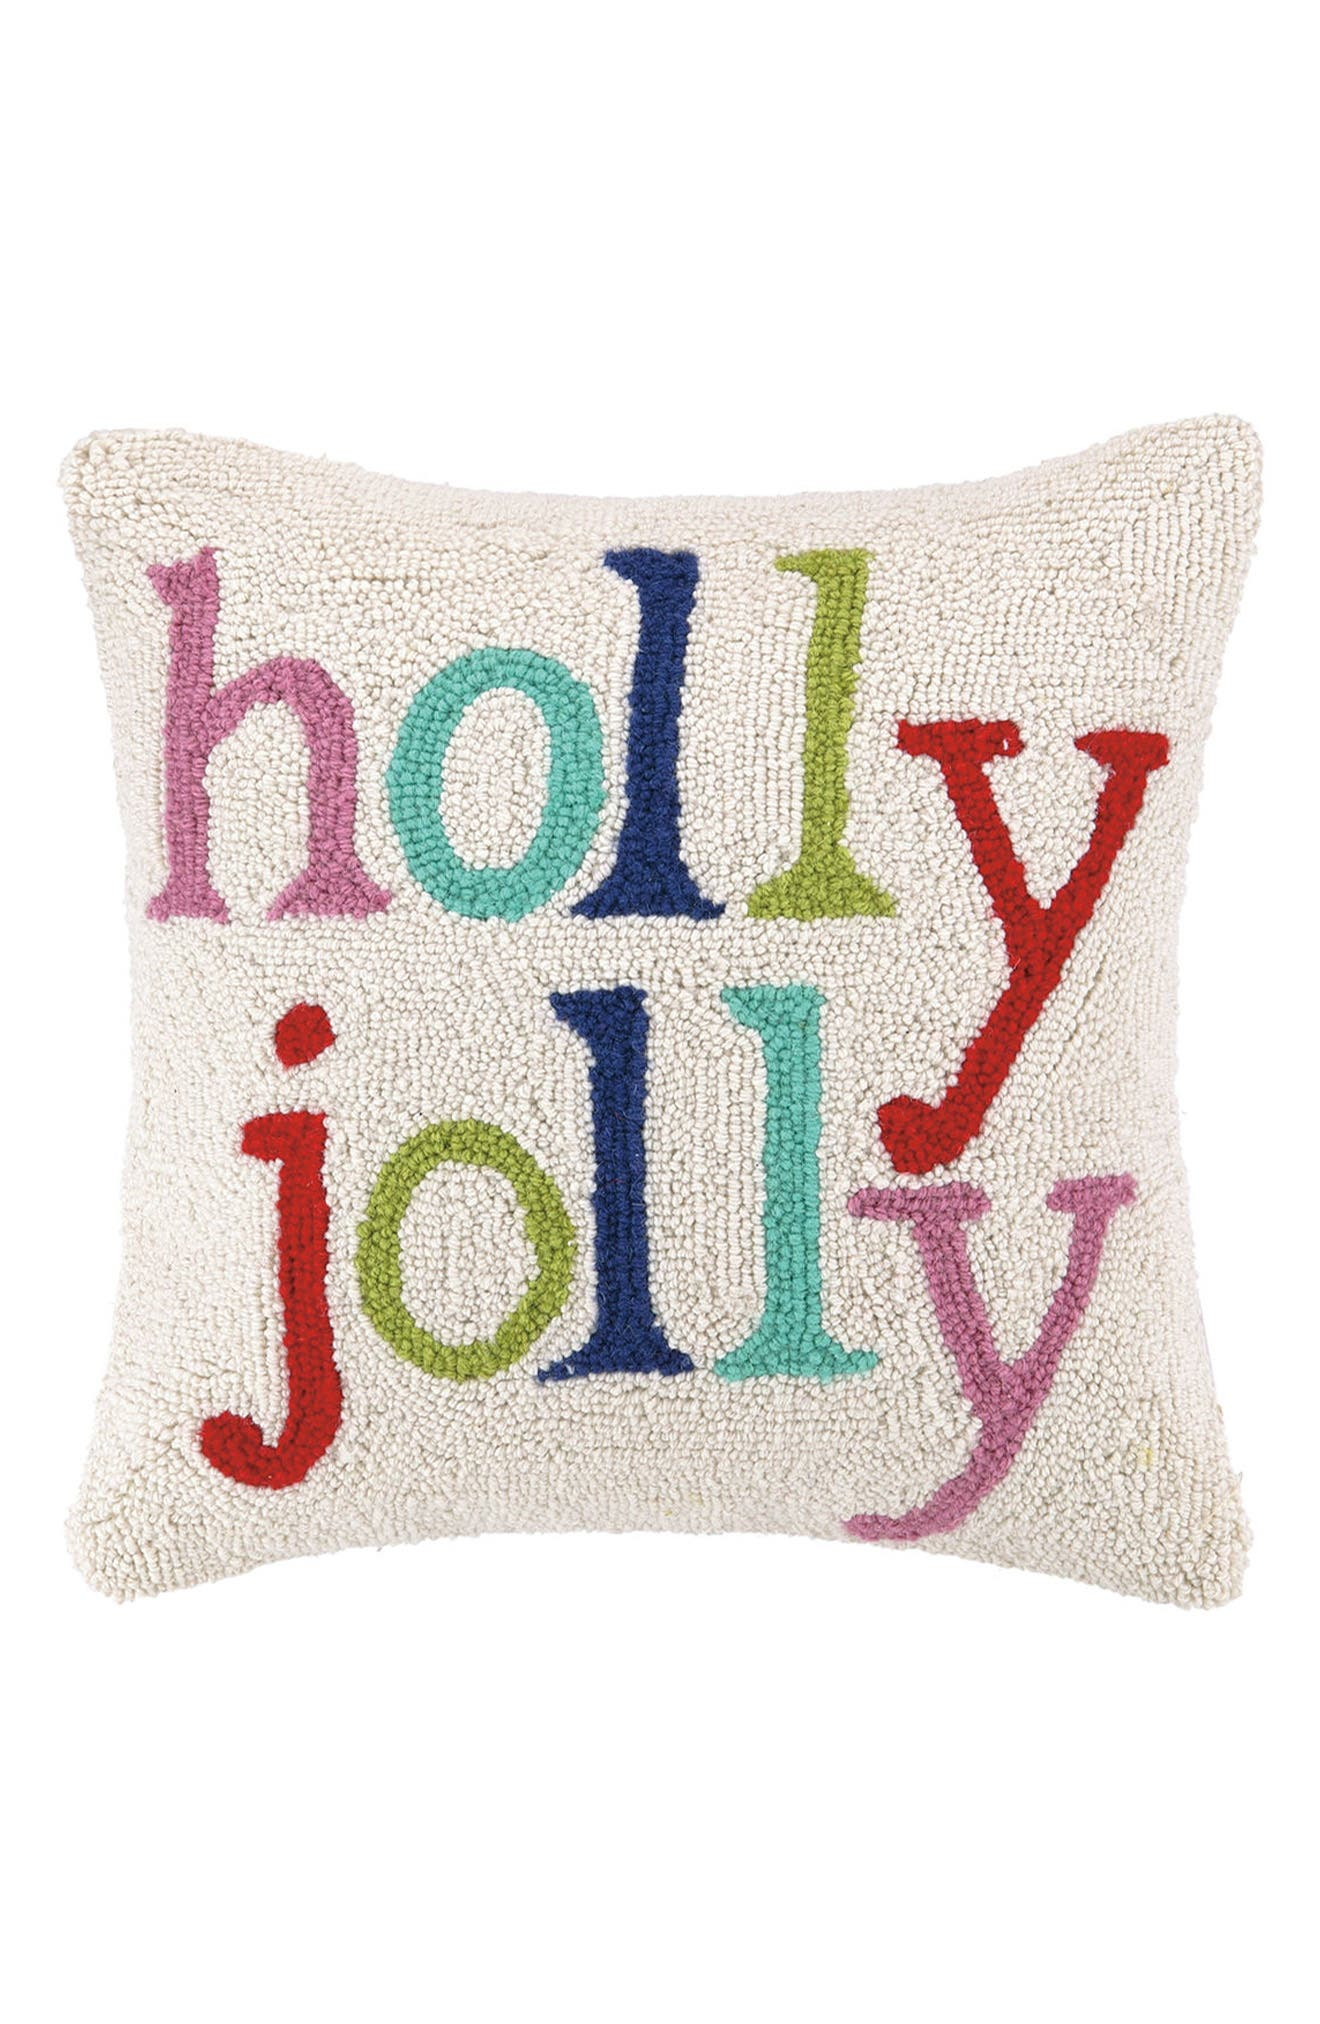 Alternate Image 1 Selected - Peking Handicraft Holly Jolly Hooked Accent Pillow